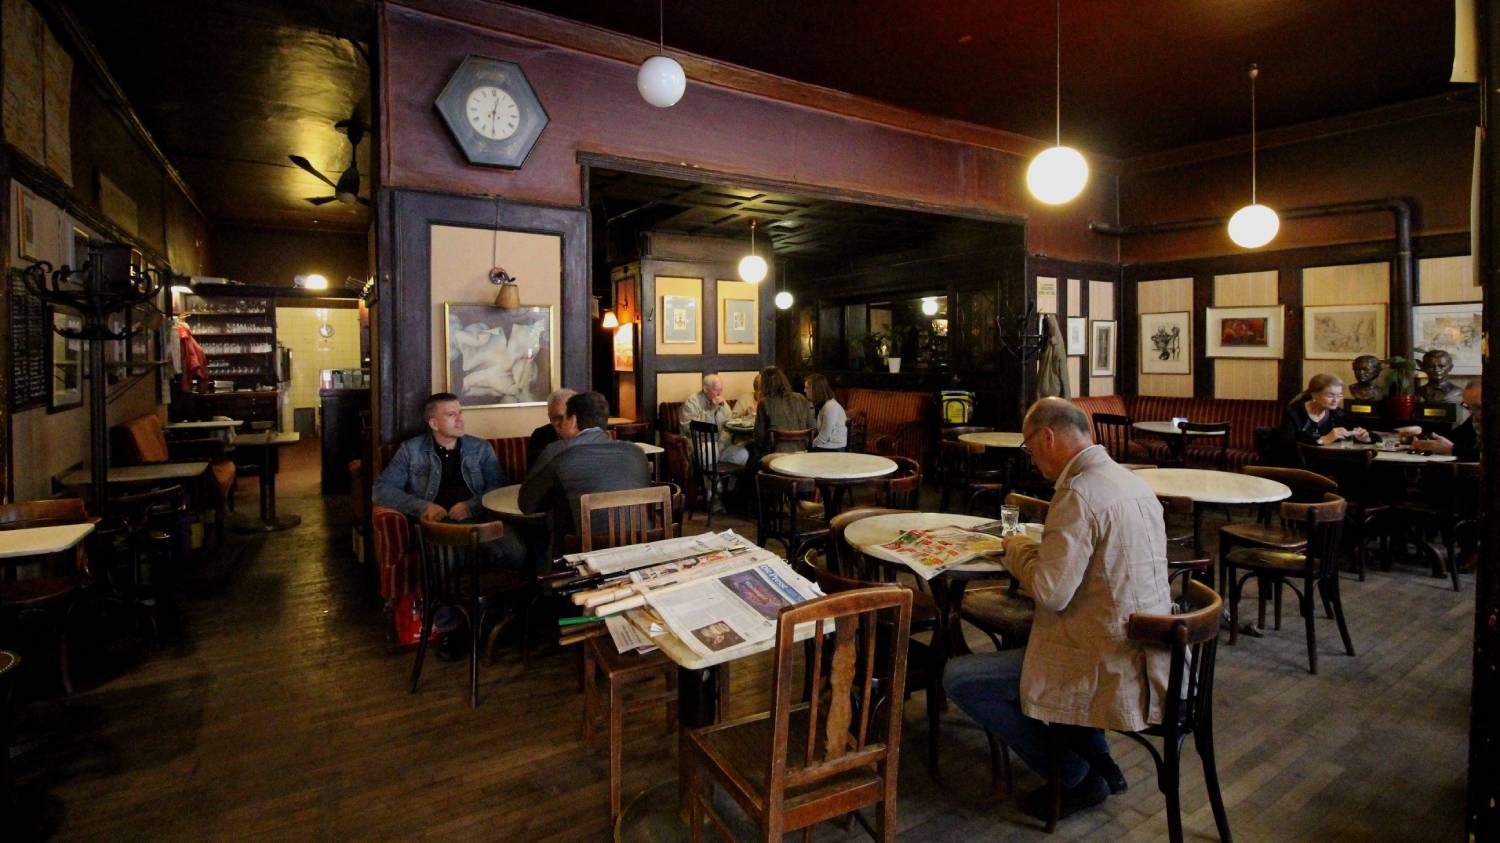 Cafe Hawelka - Things To Do In Vienna